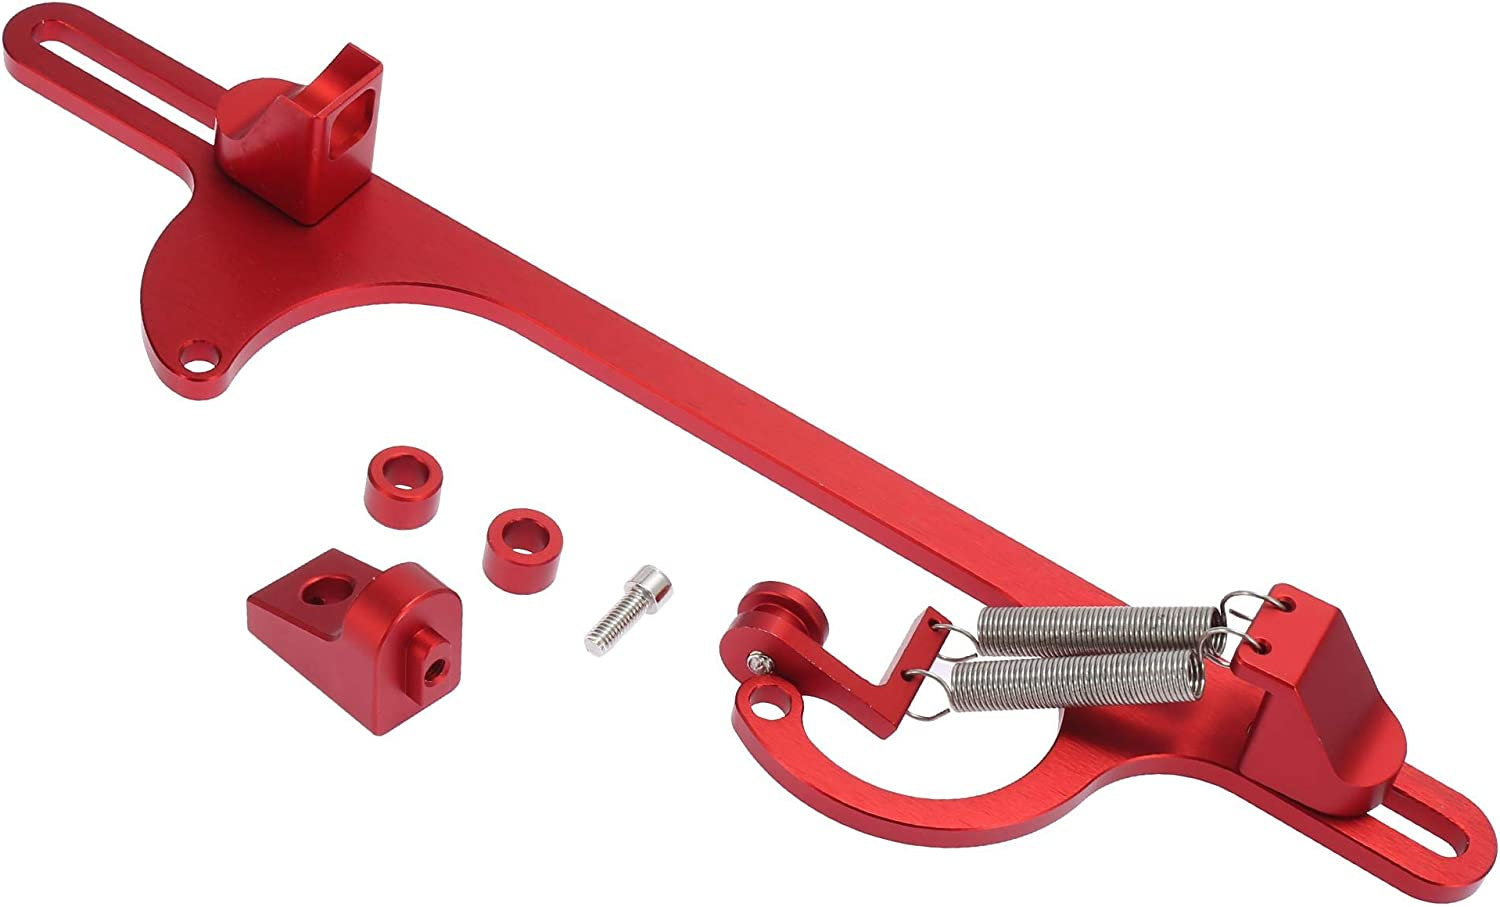 X AUTOHAUX Car Adjustable Throttle Indianapolis Mall Recommended Cable 4150 Kit Bracket fo for